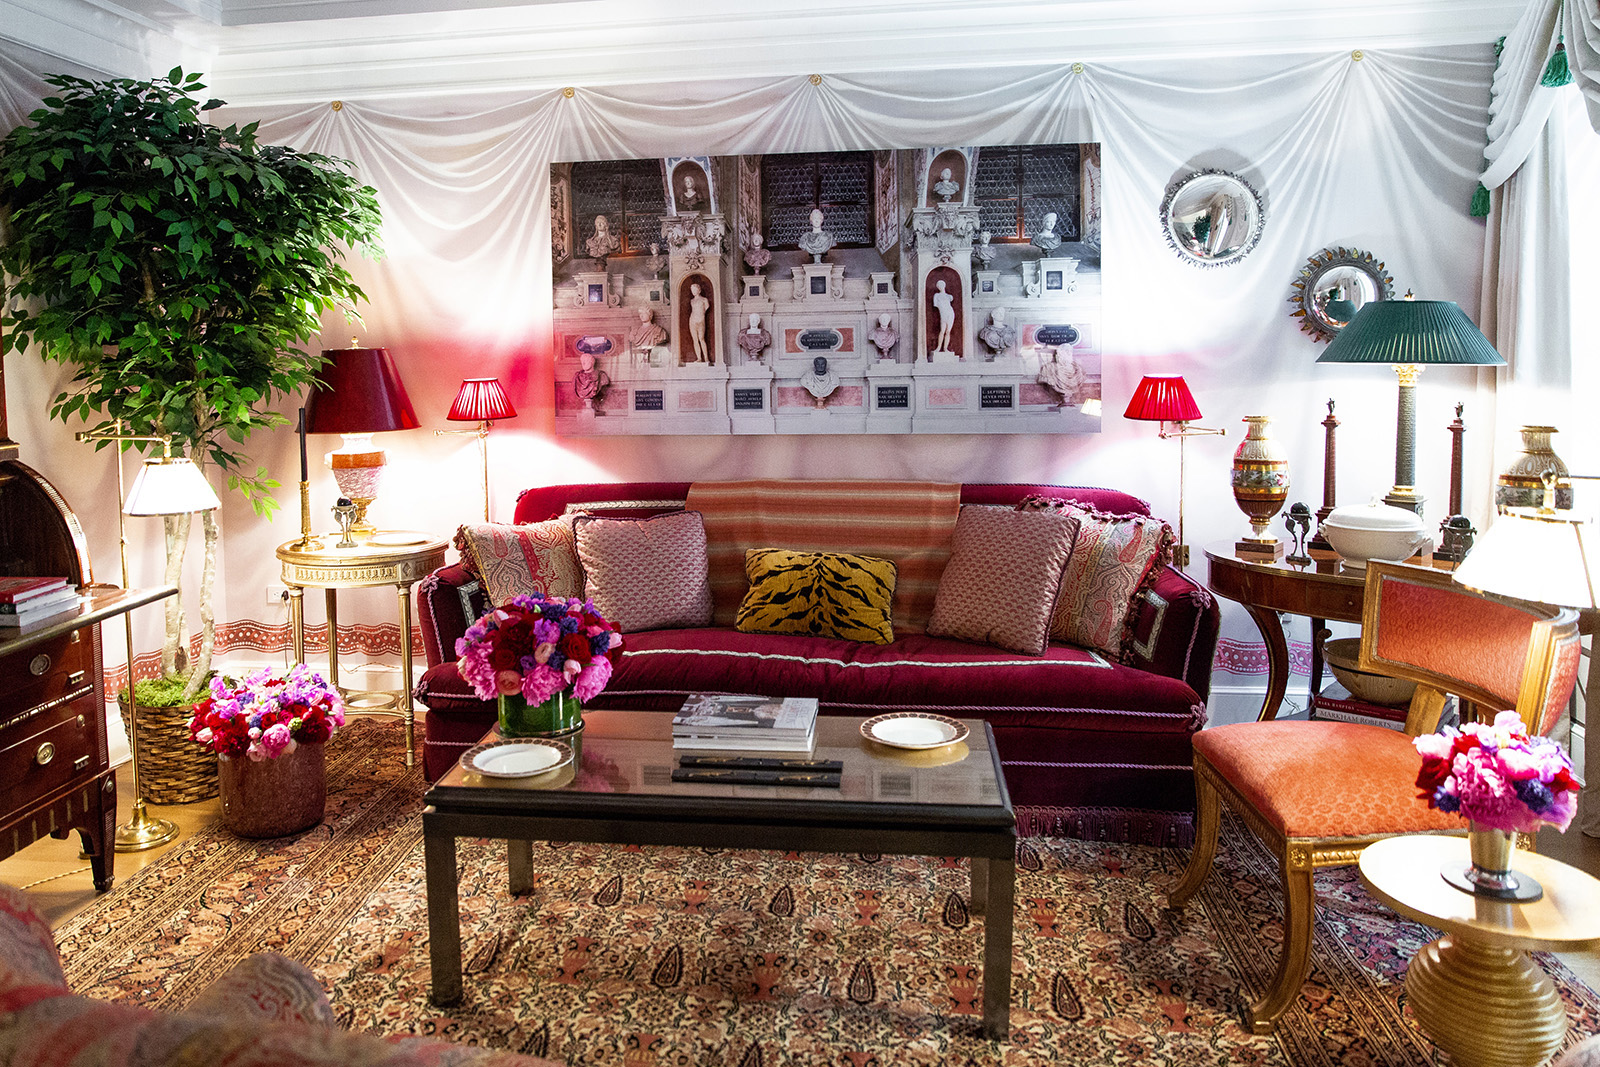 Kips Bay Decorator Show House 2018